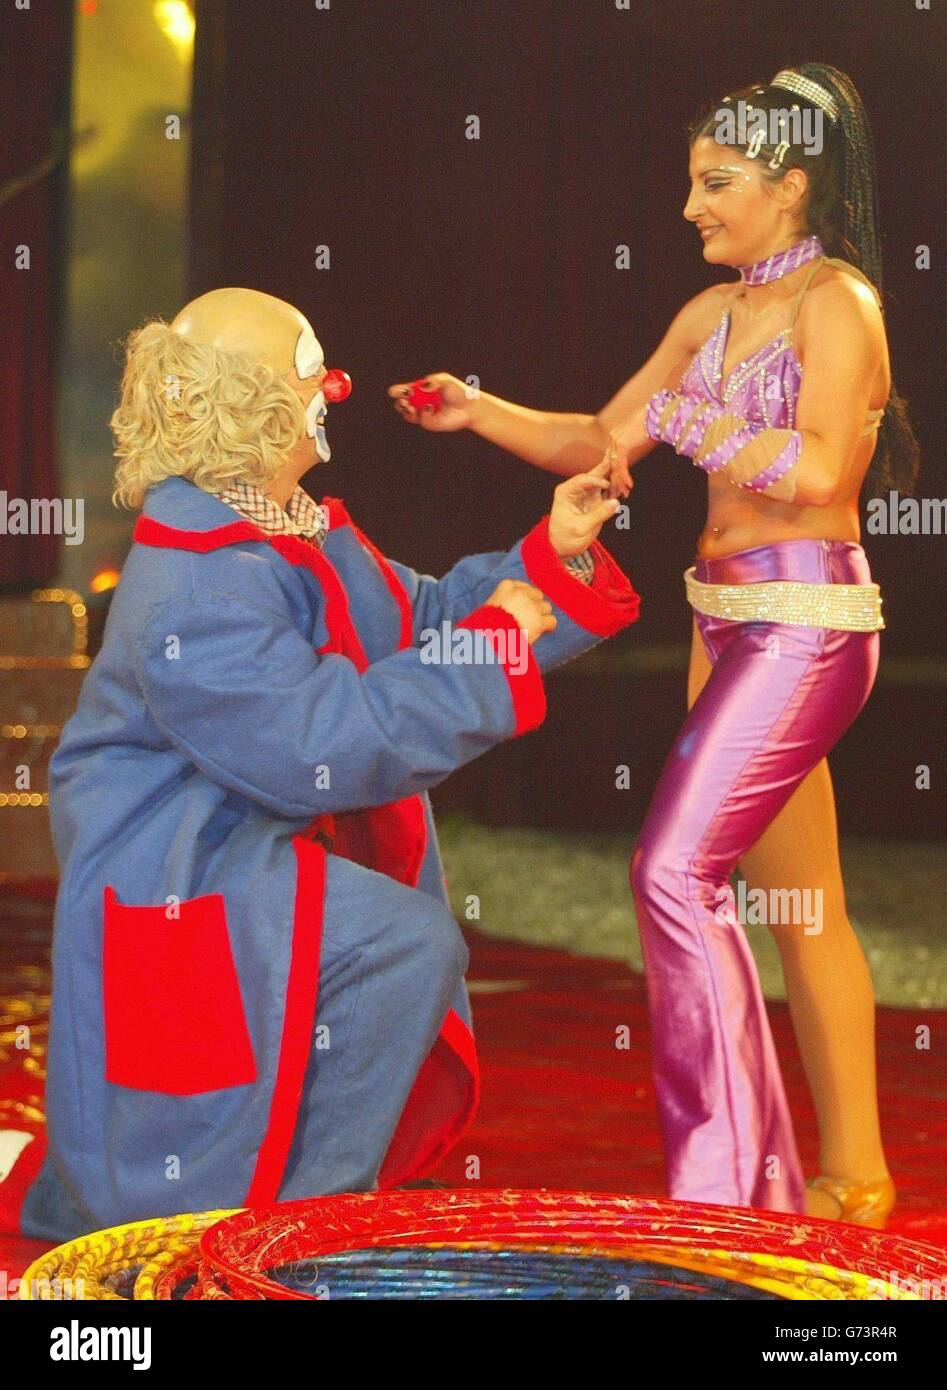 Nicol the clown proposes to Jana Roberts - Stock Image